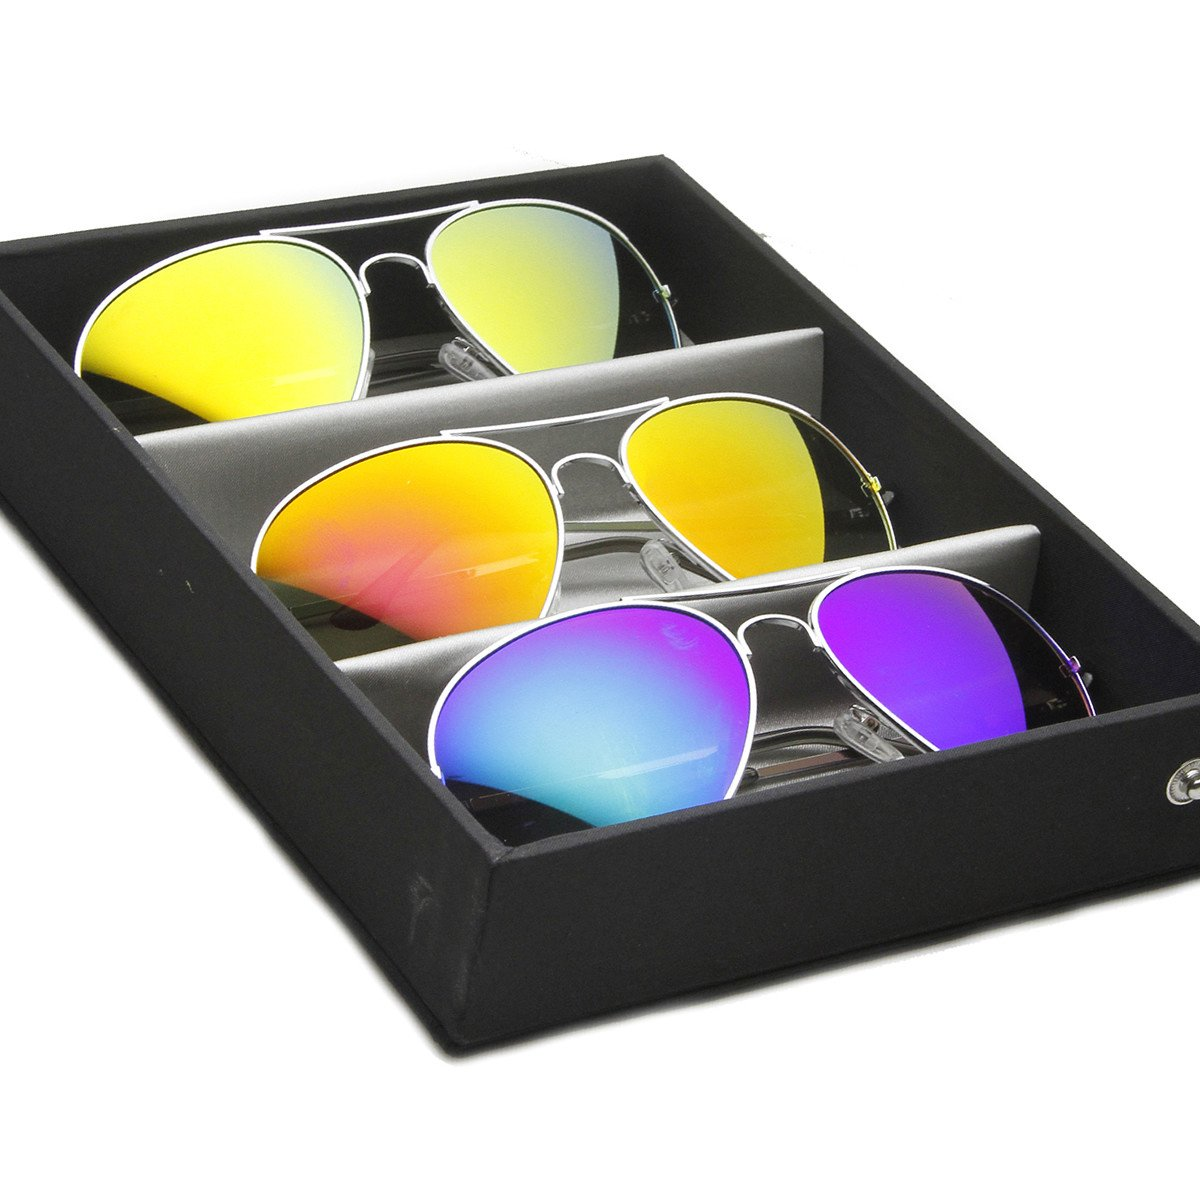 Collectors Edition Eyewear Glasses Sunglasses Vinyl Display Carrying Case 1025